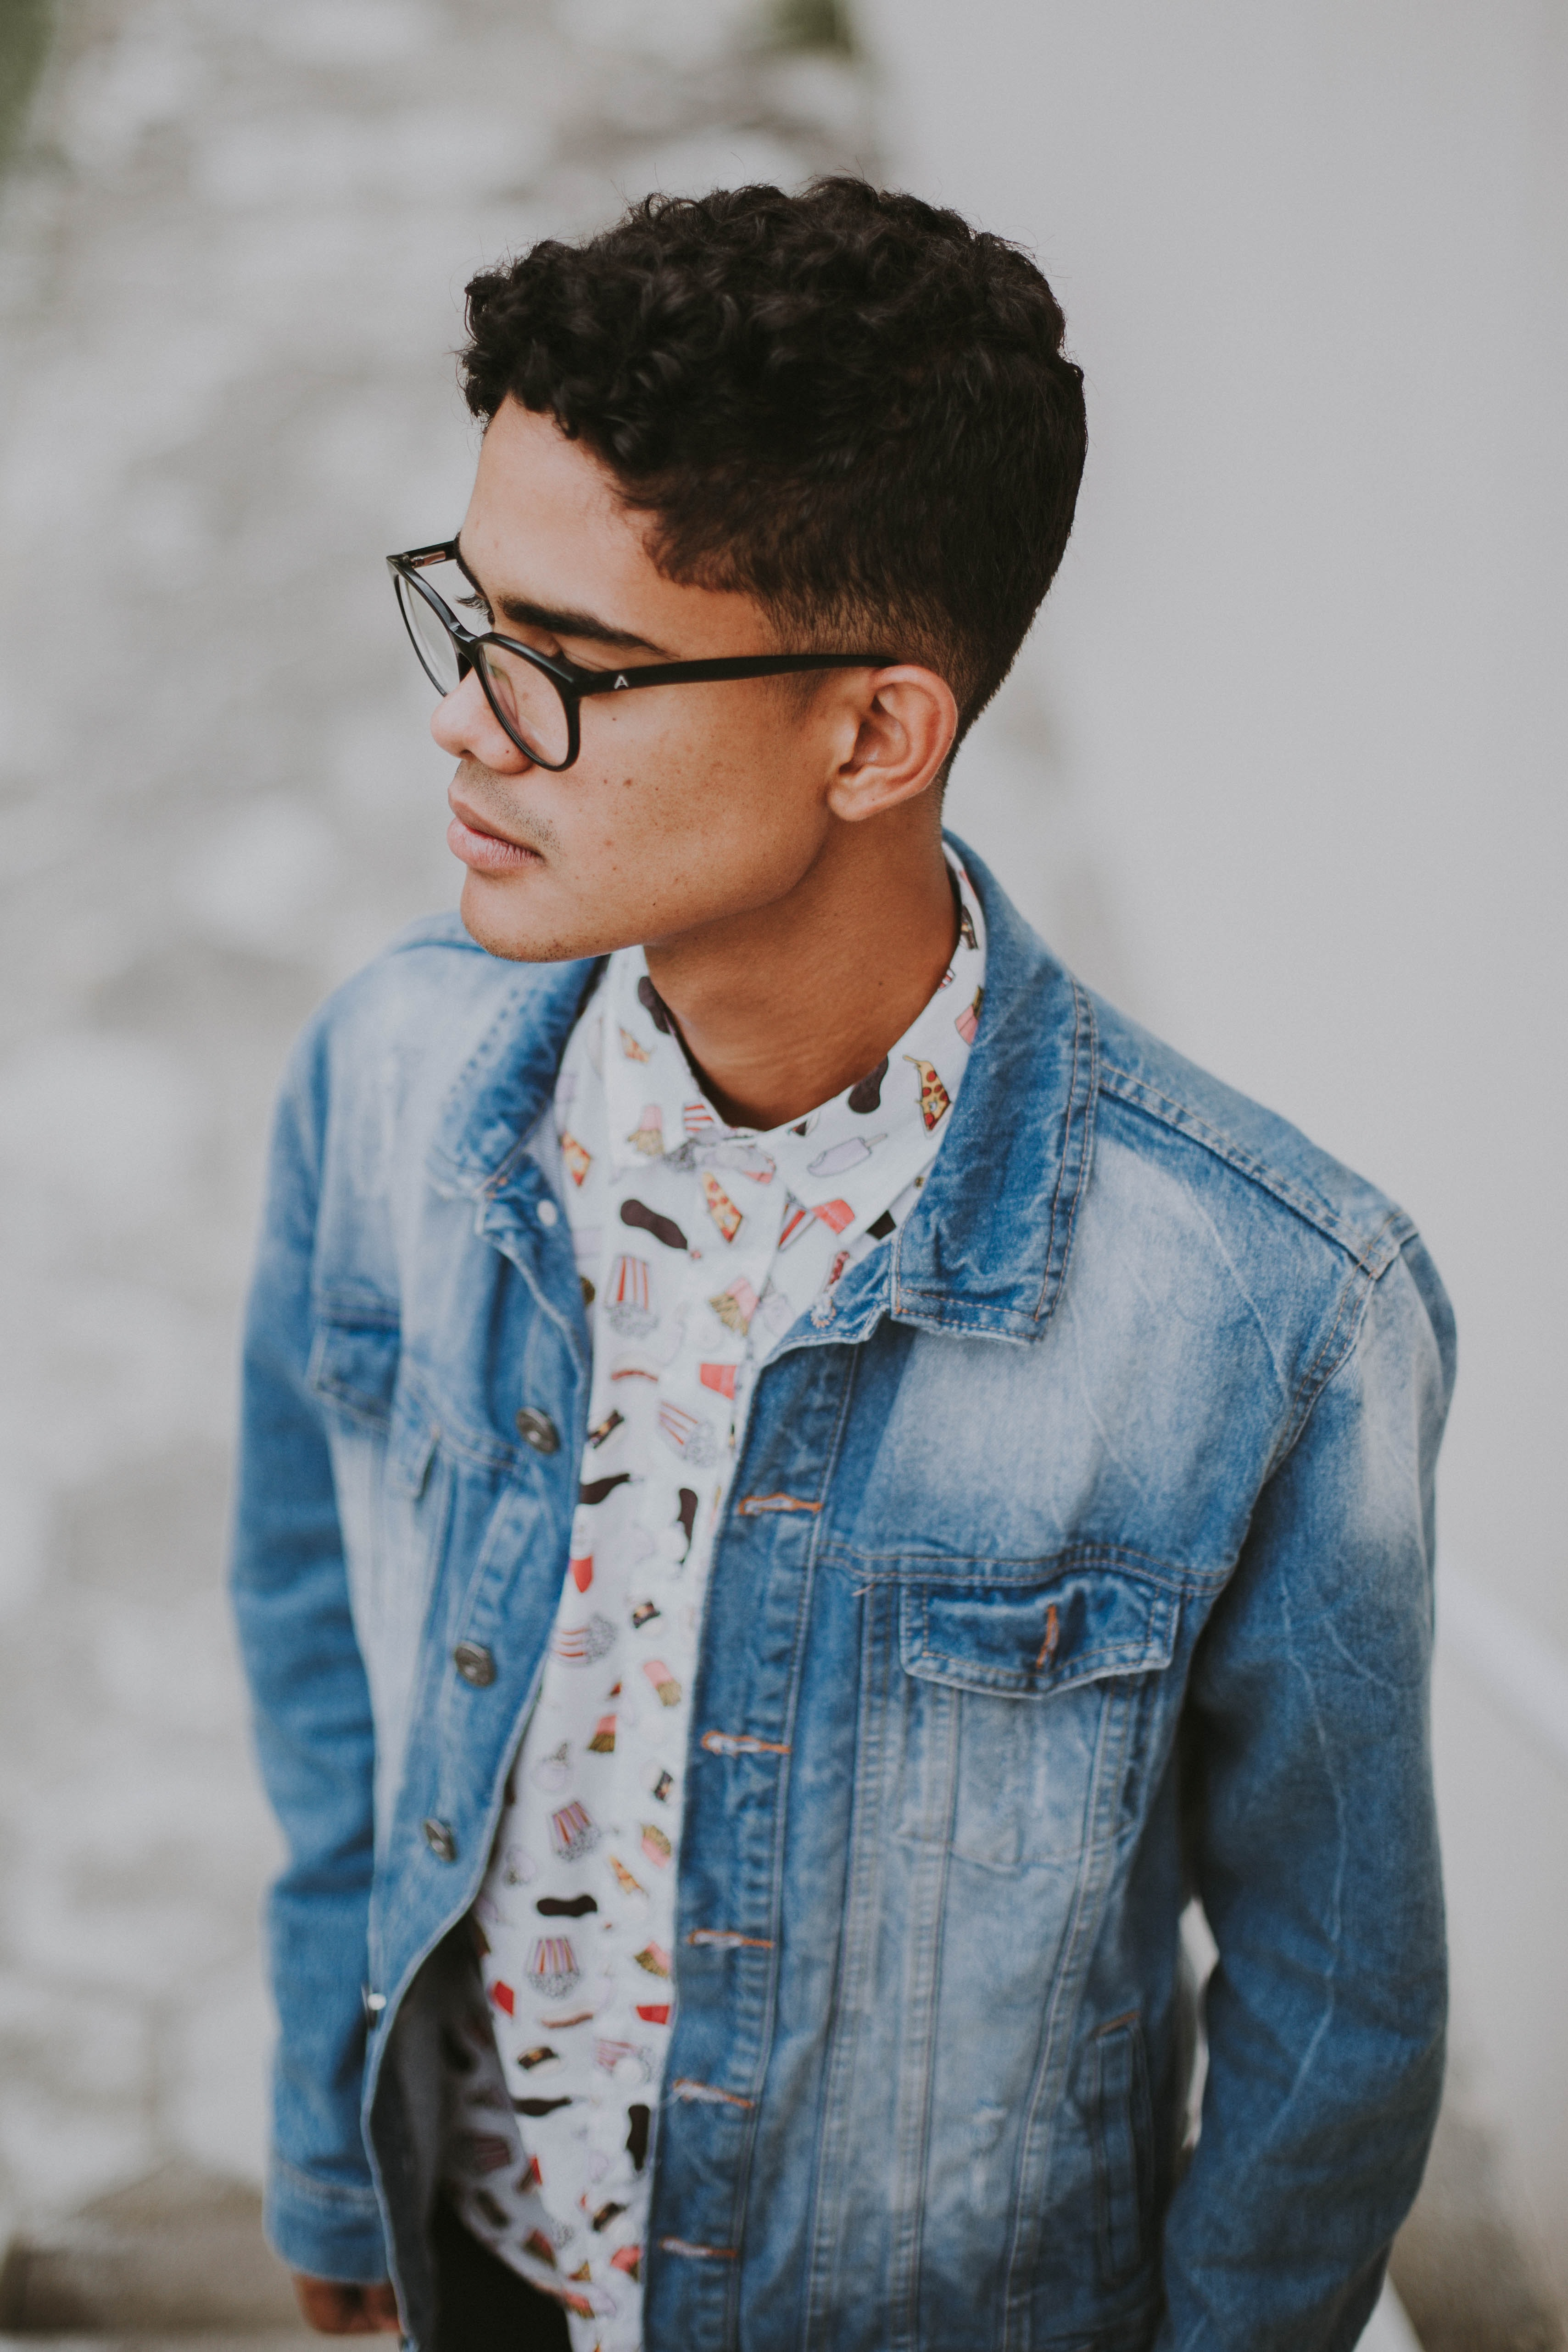 man wearing blue denim jacket looking sideways